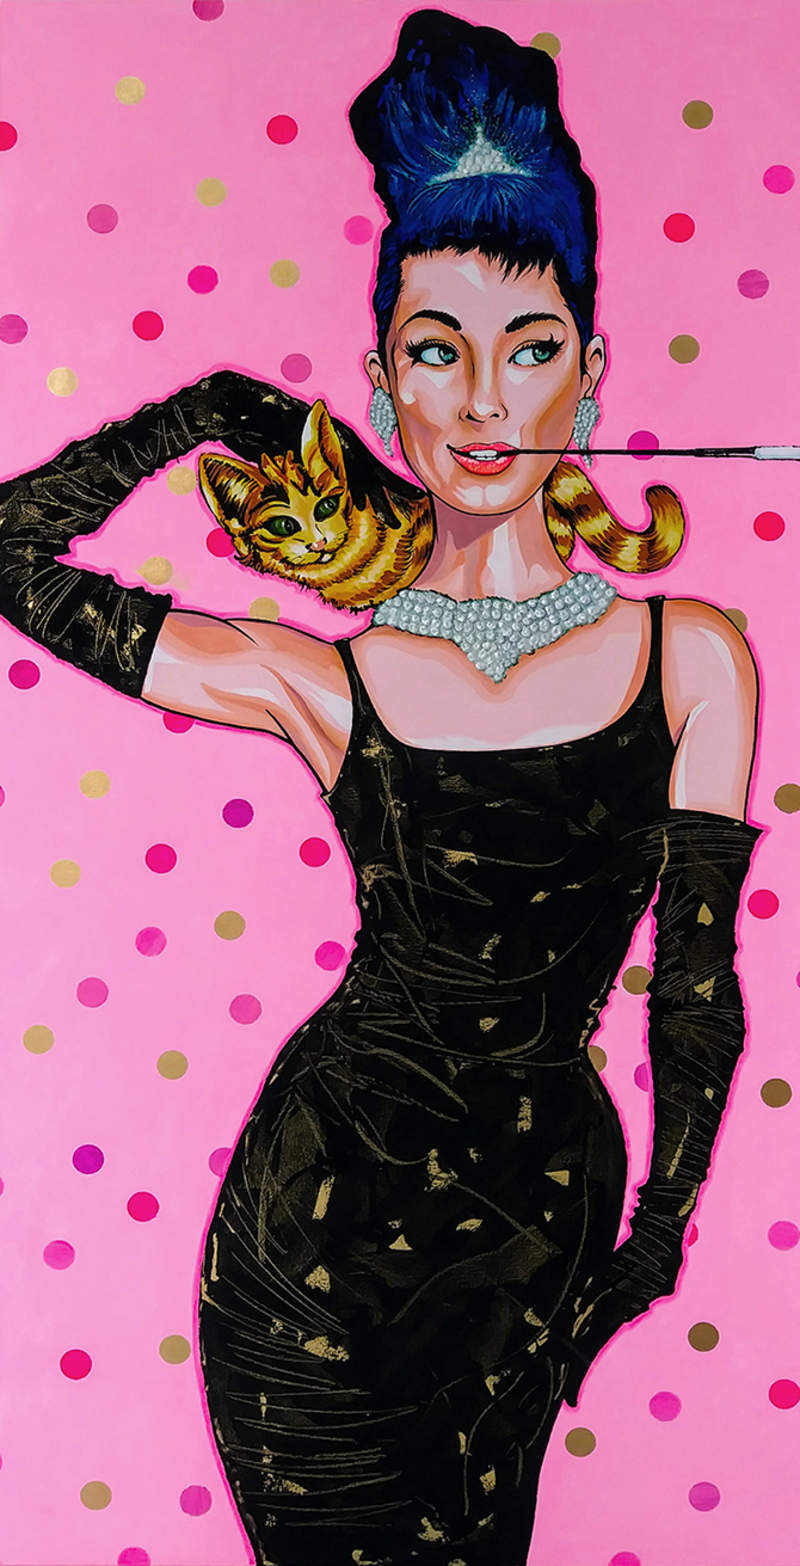 AUDREY / POP ART  | Tobar Jose